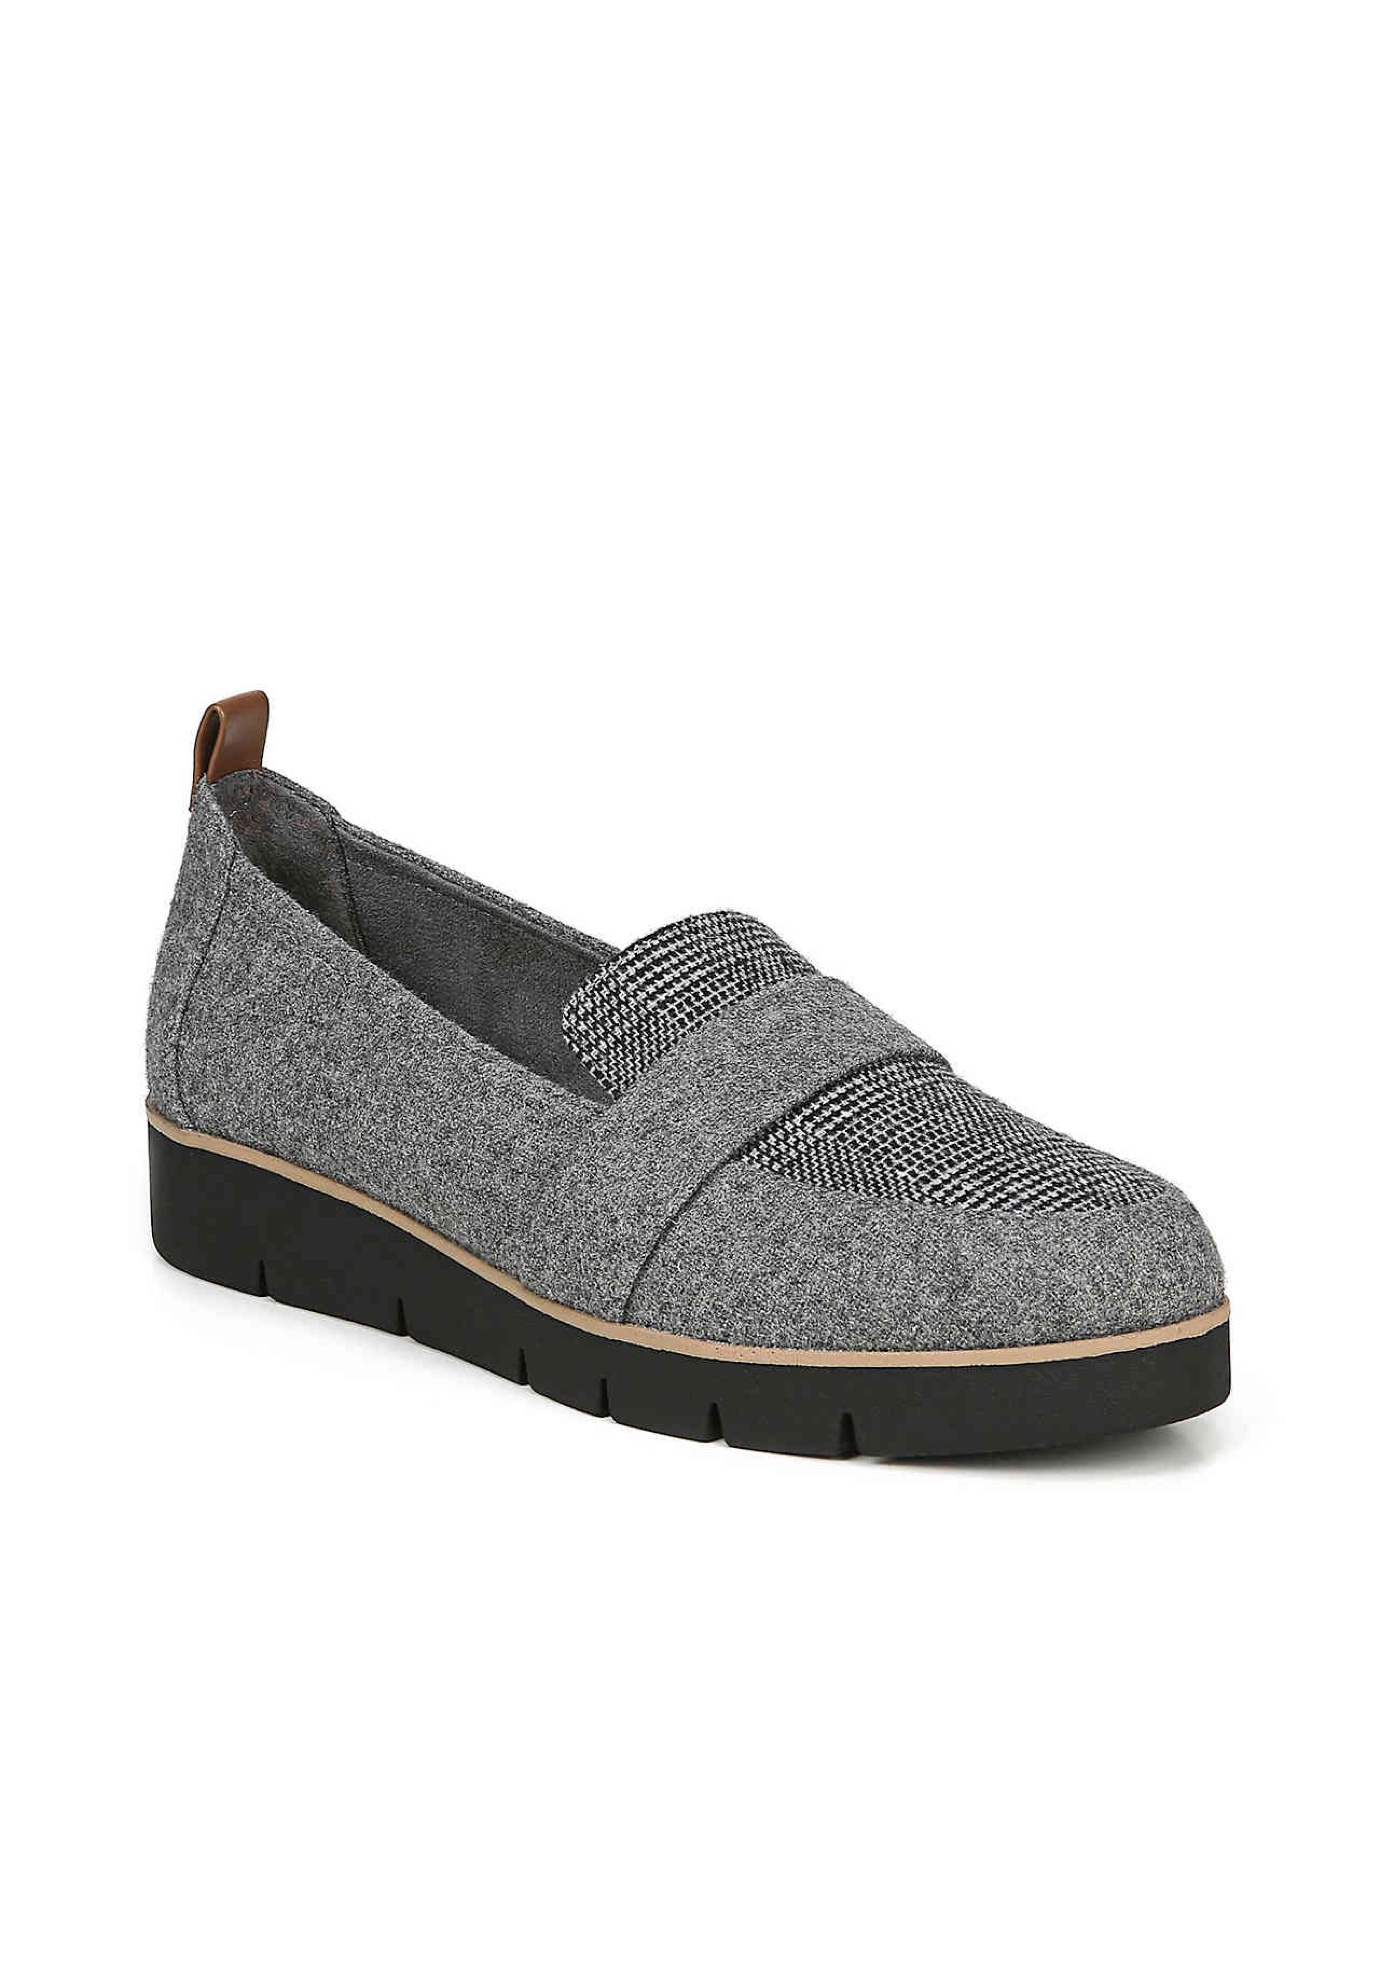 Webster Slip-On by Dr. Scholl's,